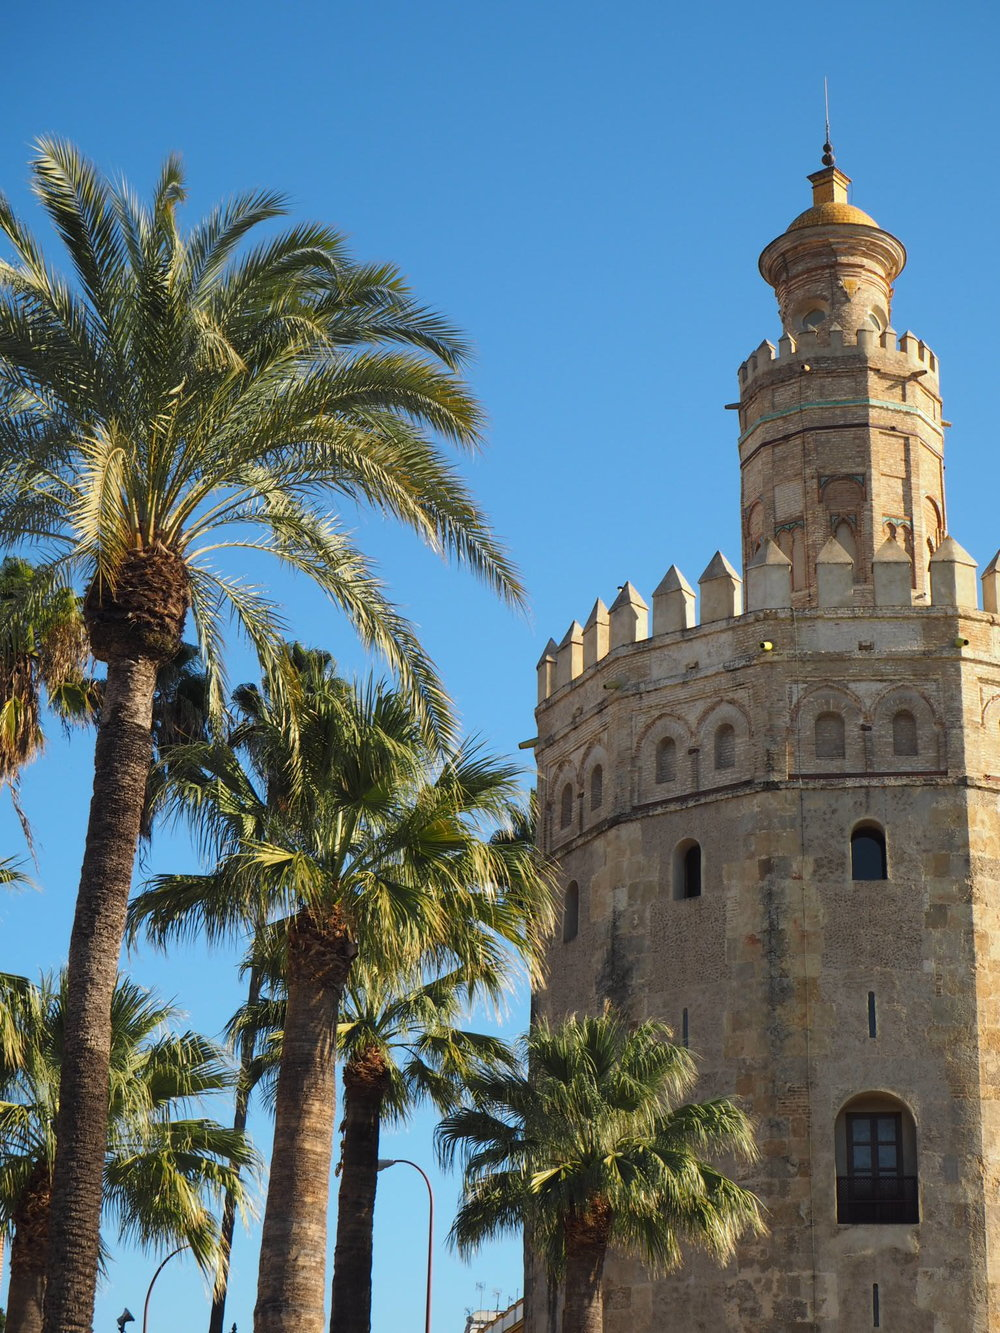 torre del oro (the tower of gold) was built by the Almohad caliphate in the 13th century.